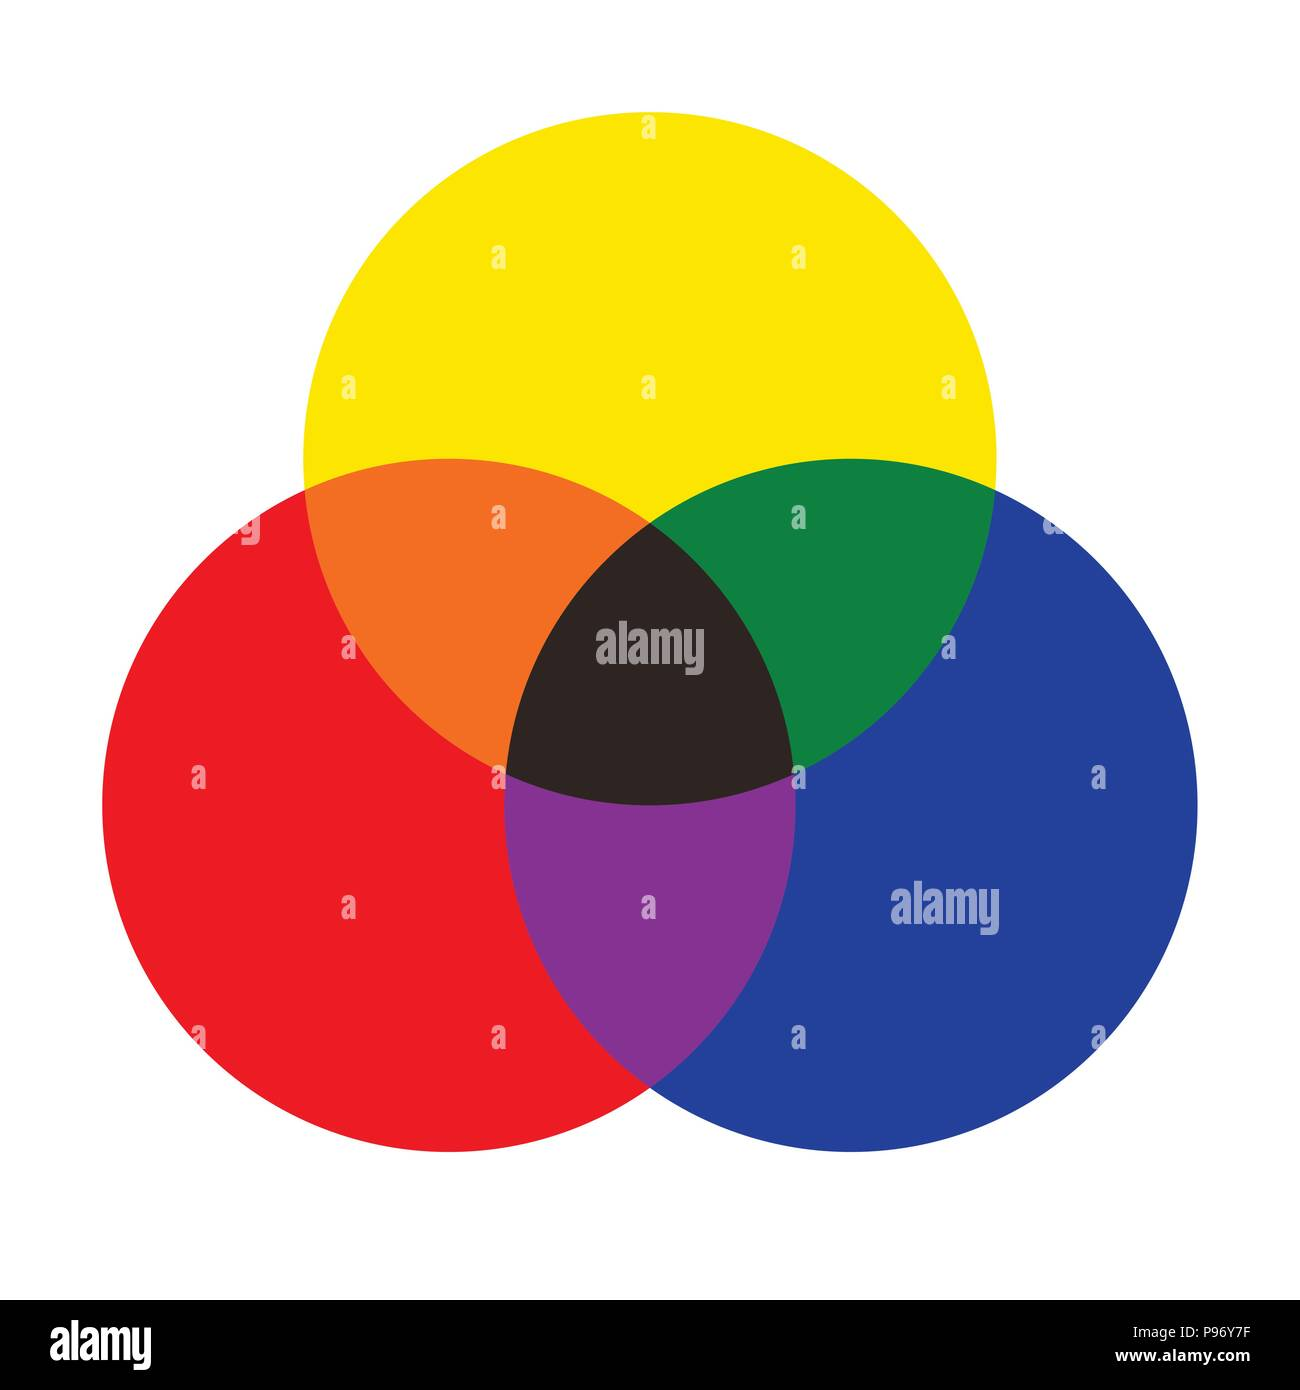 ryb color blending red yellow blue this system is used by